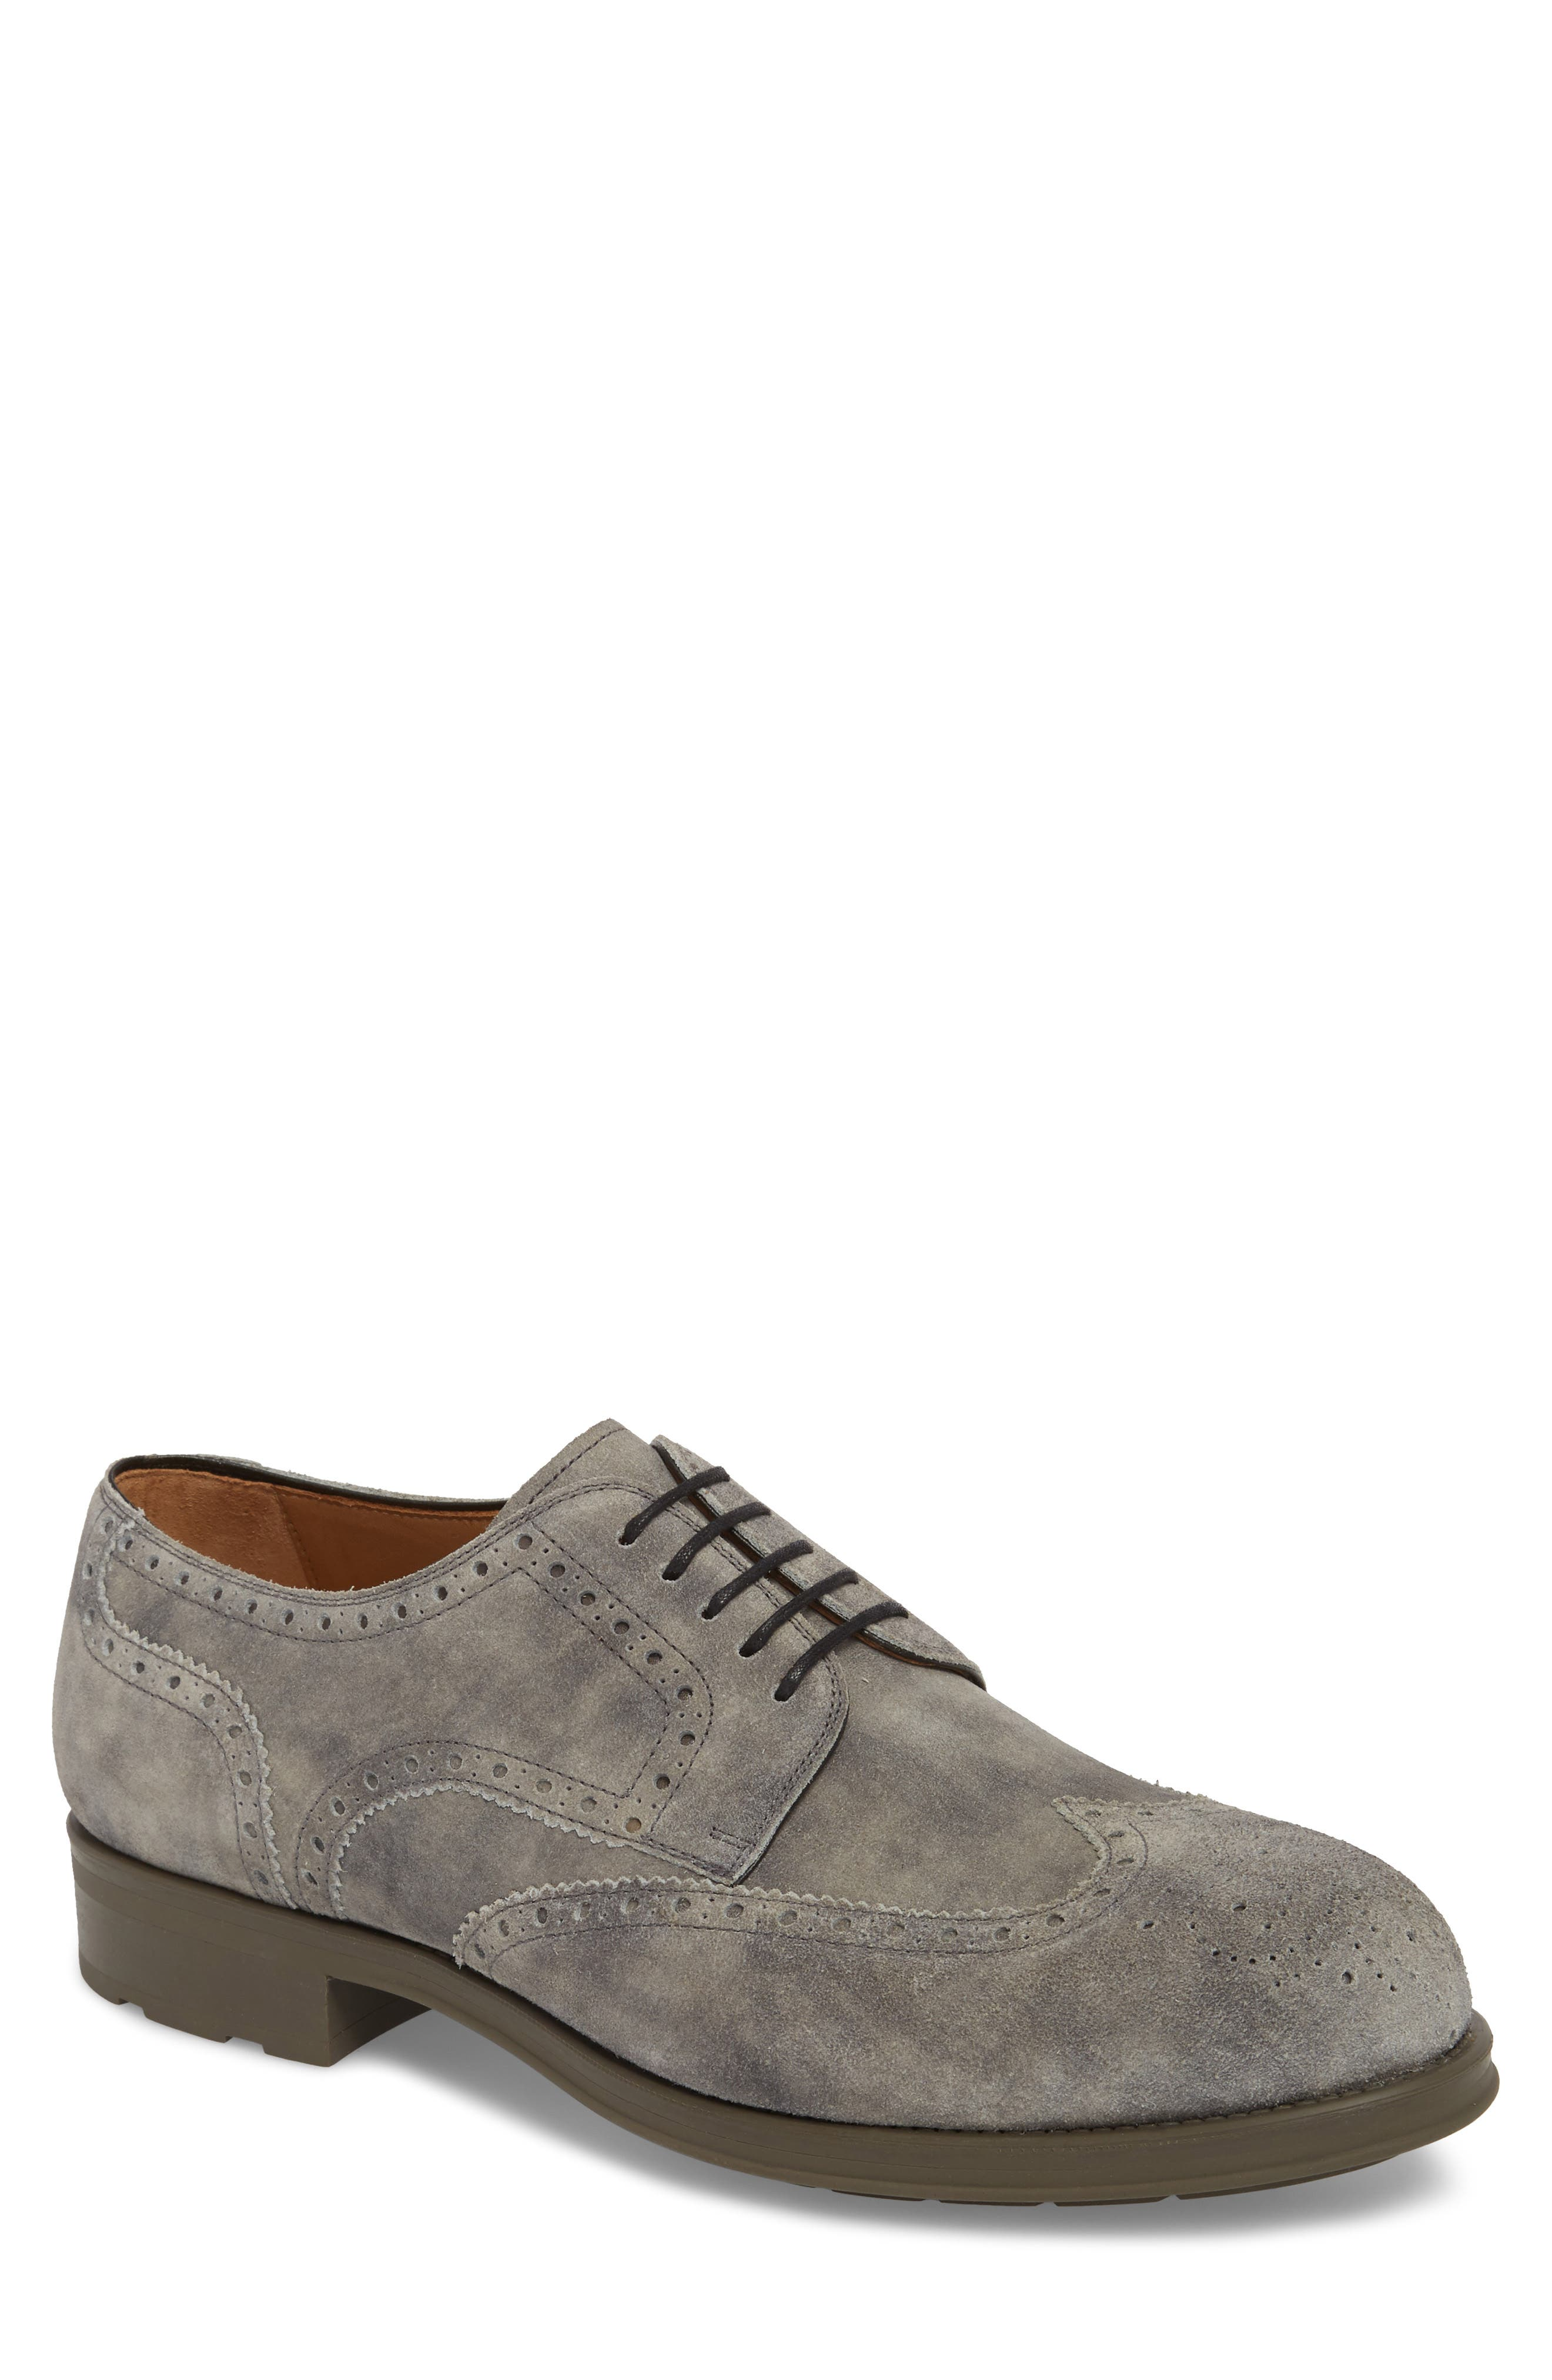 Tormo Wingtip,                             Main thumbnail 1, color,                             Grey Leather